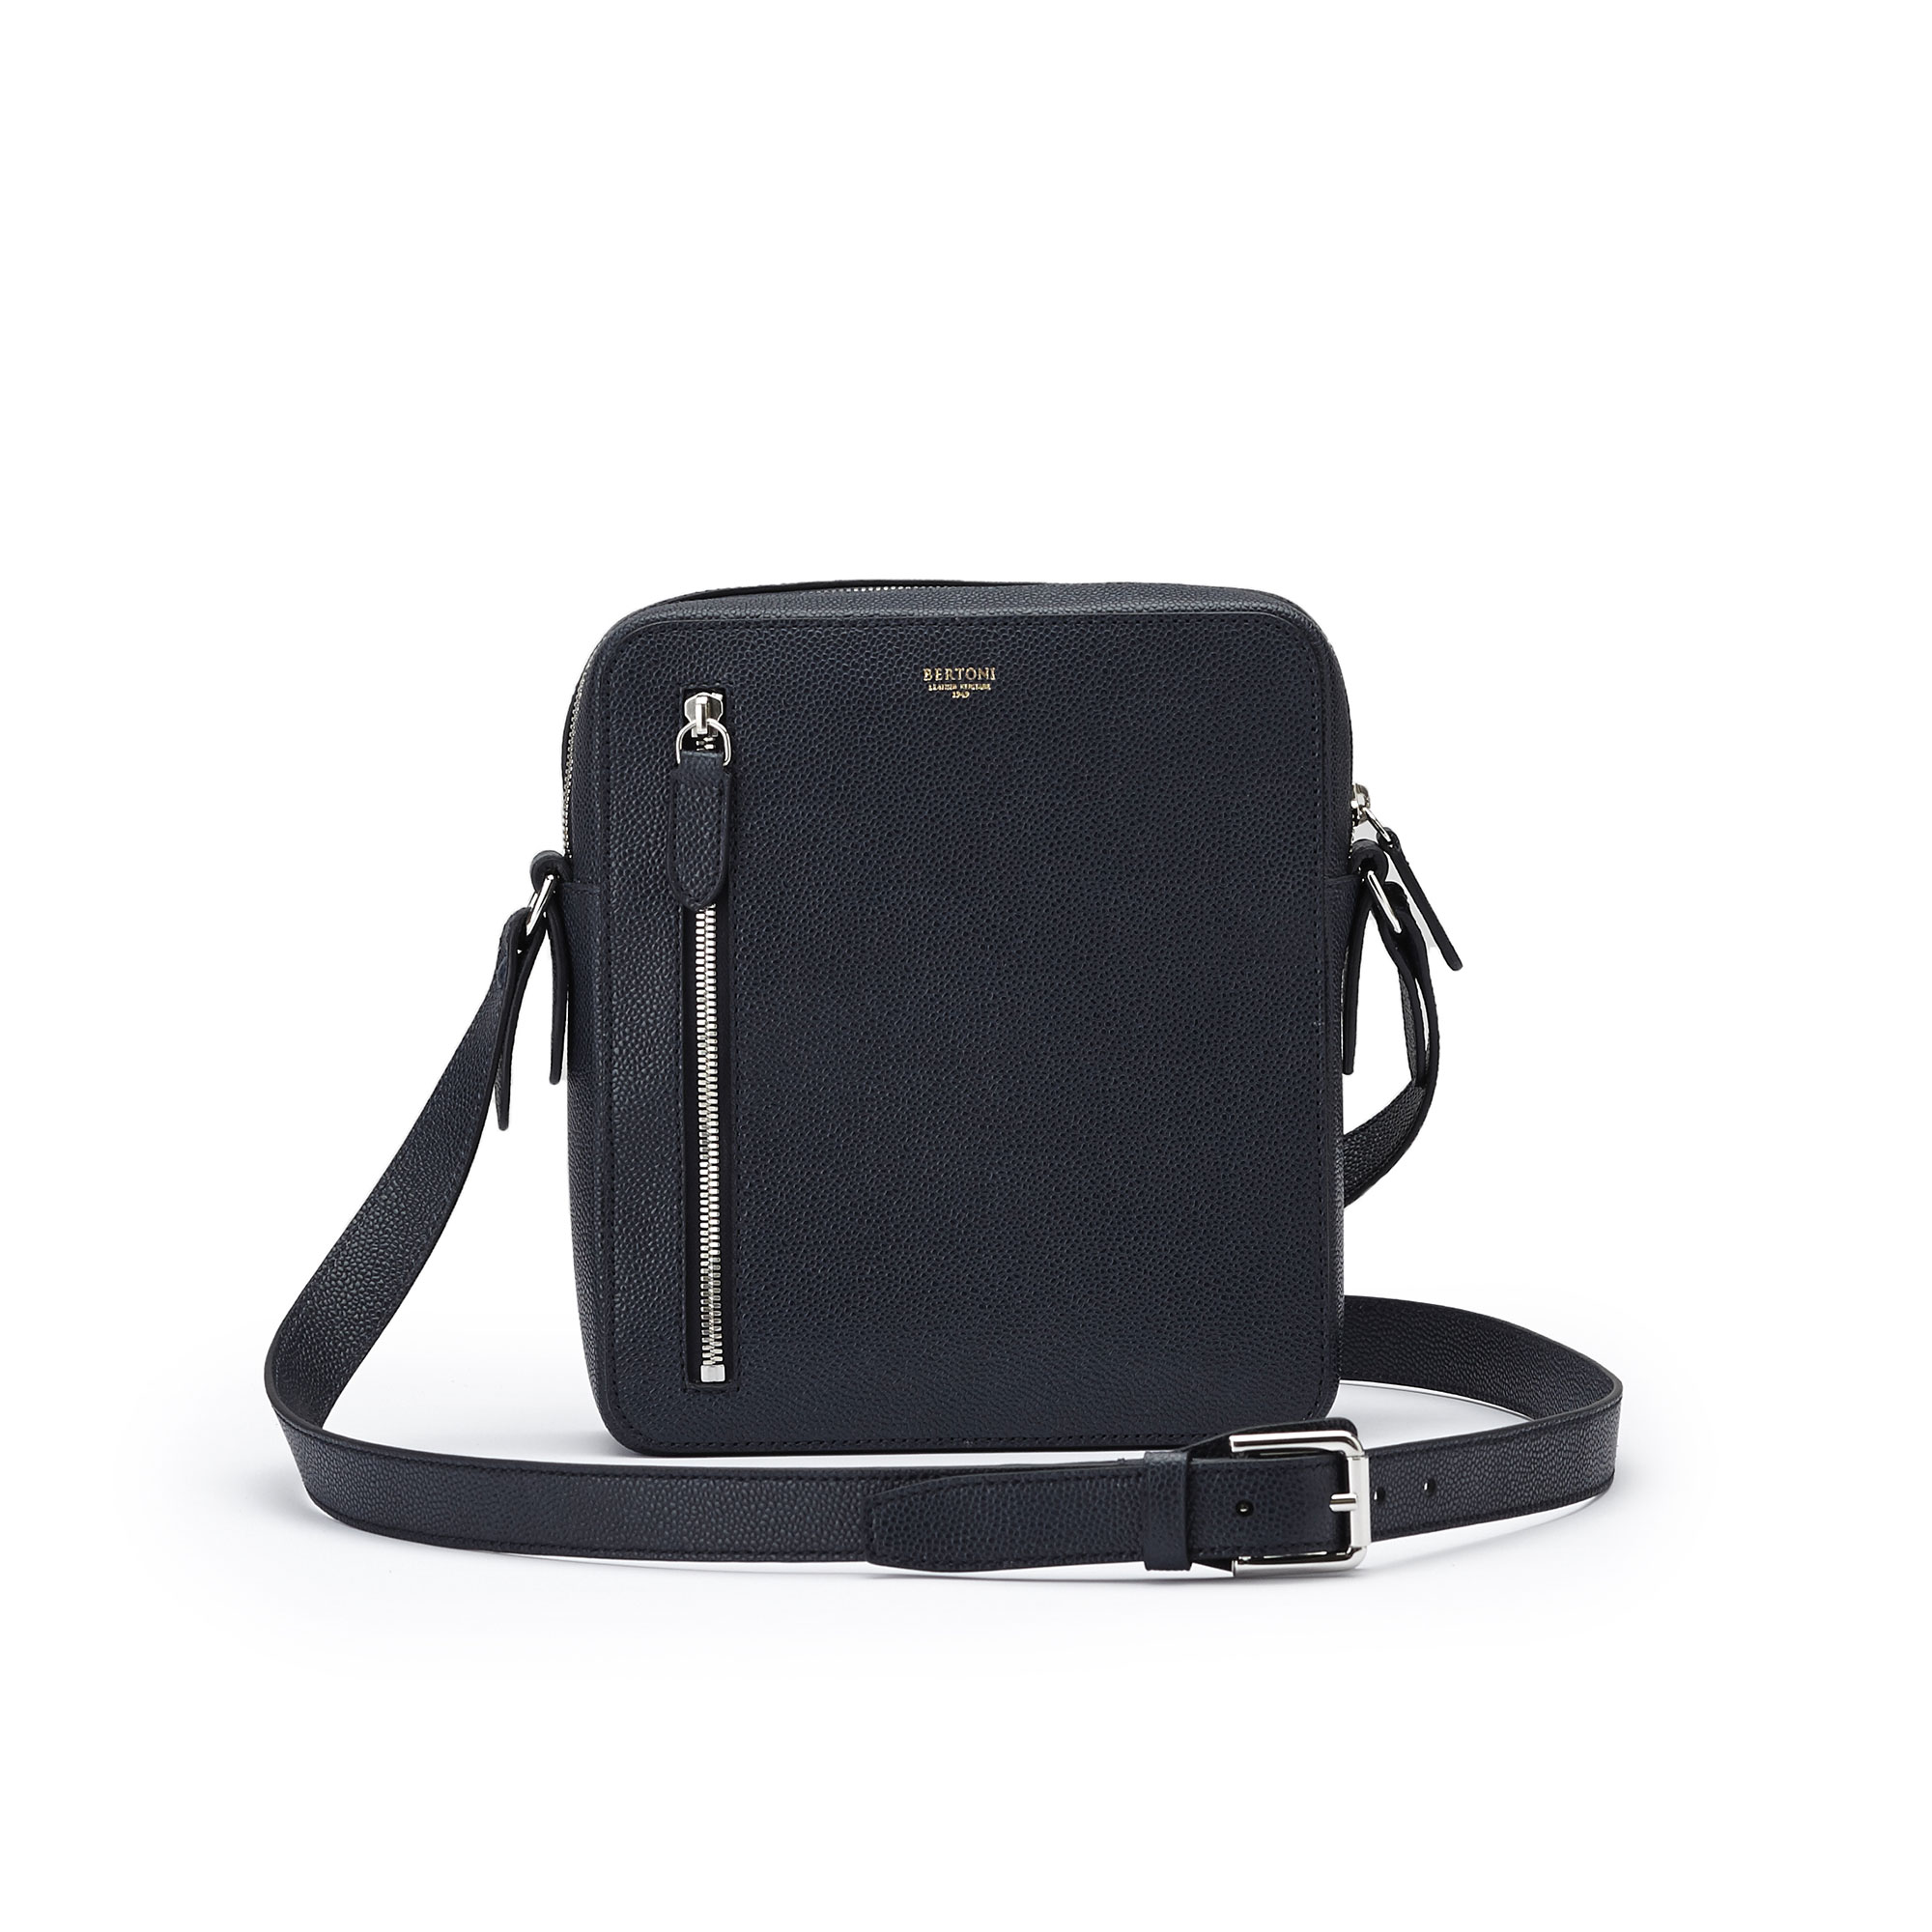 The black french calf Man Bag by Bertoni 1949 01